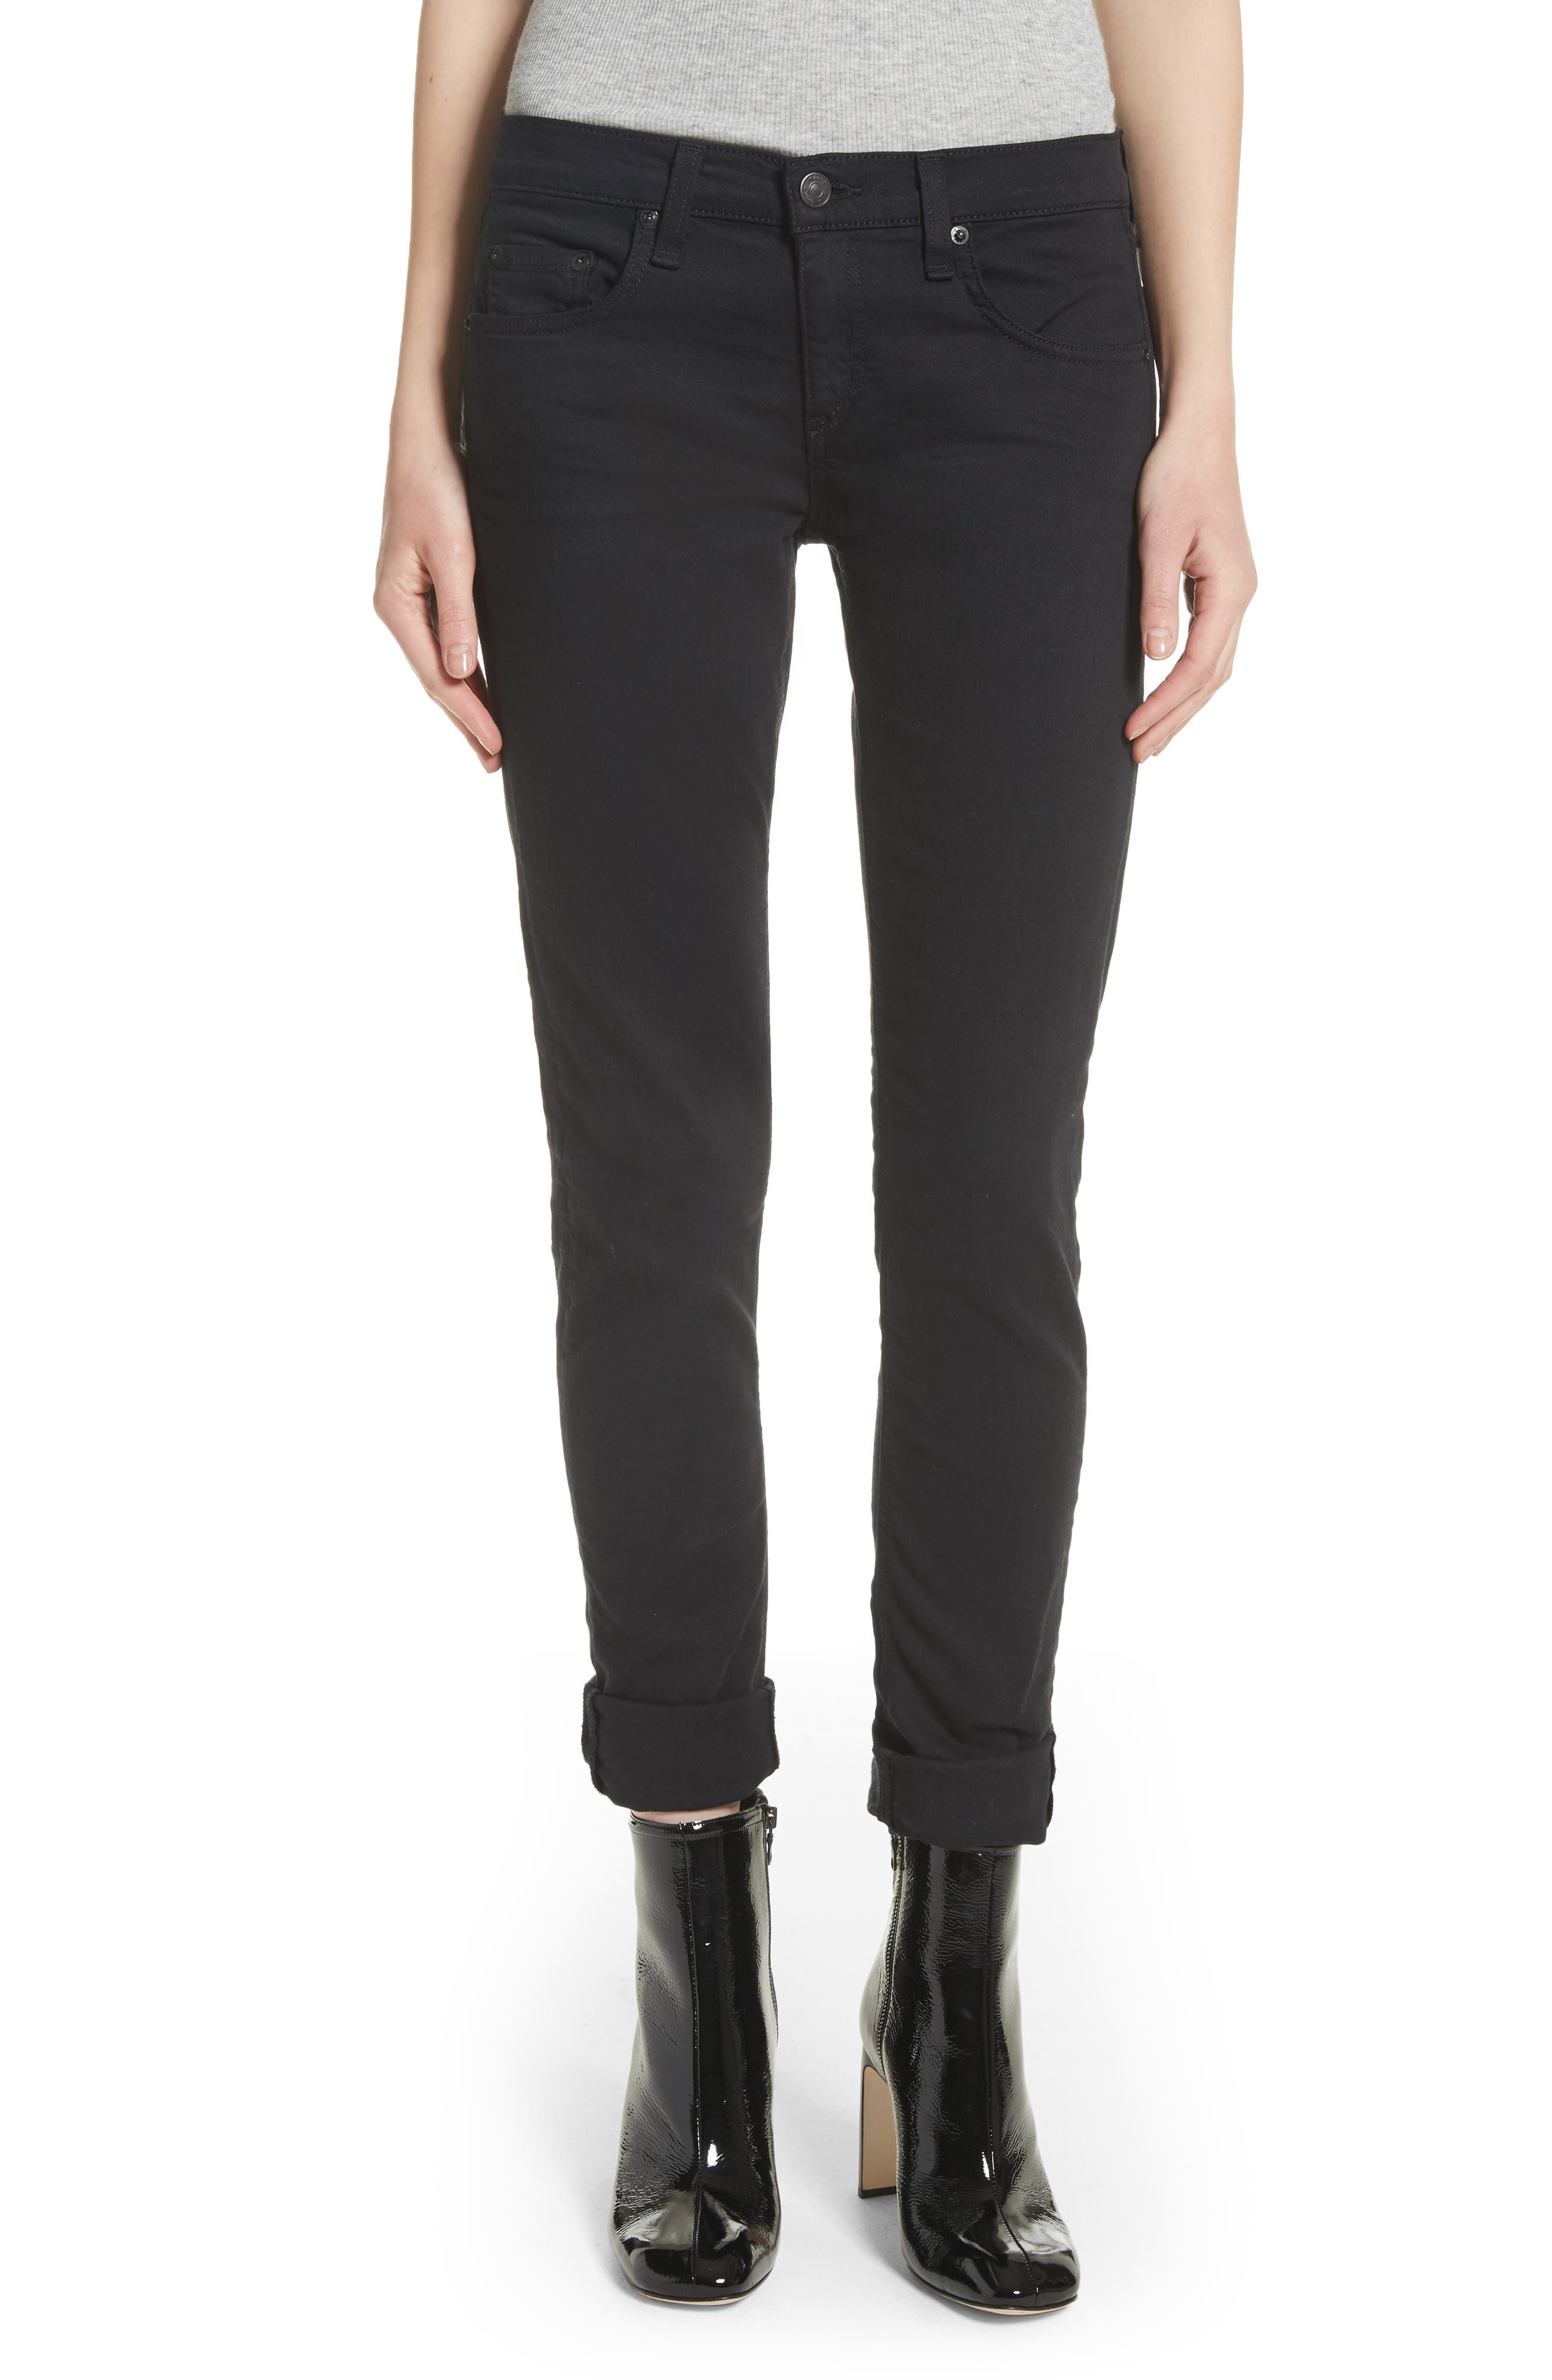 JEAN 'The Dre' Skinny Jeans,                             Main thumbnail 1, color,                             007